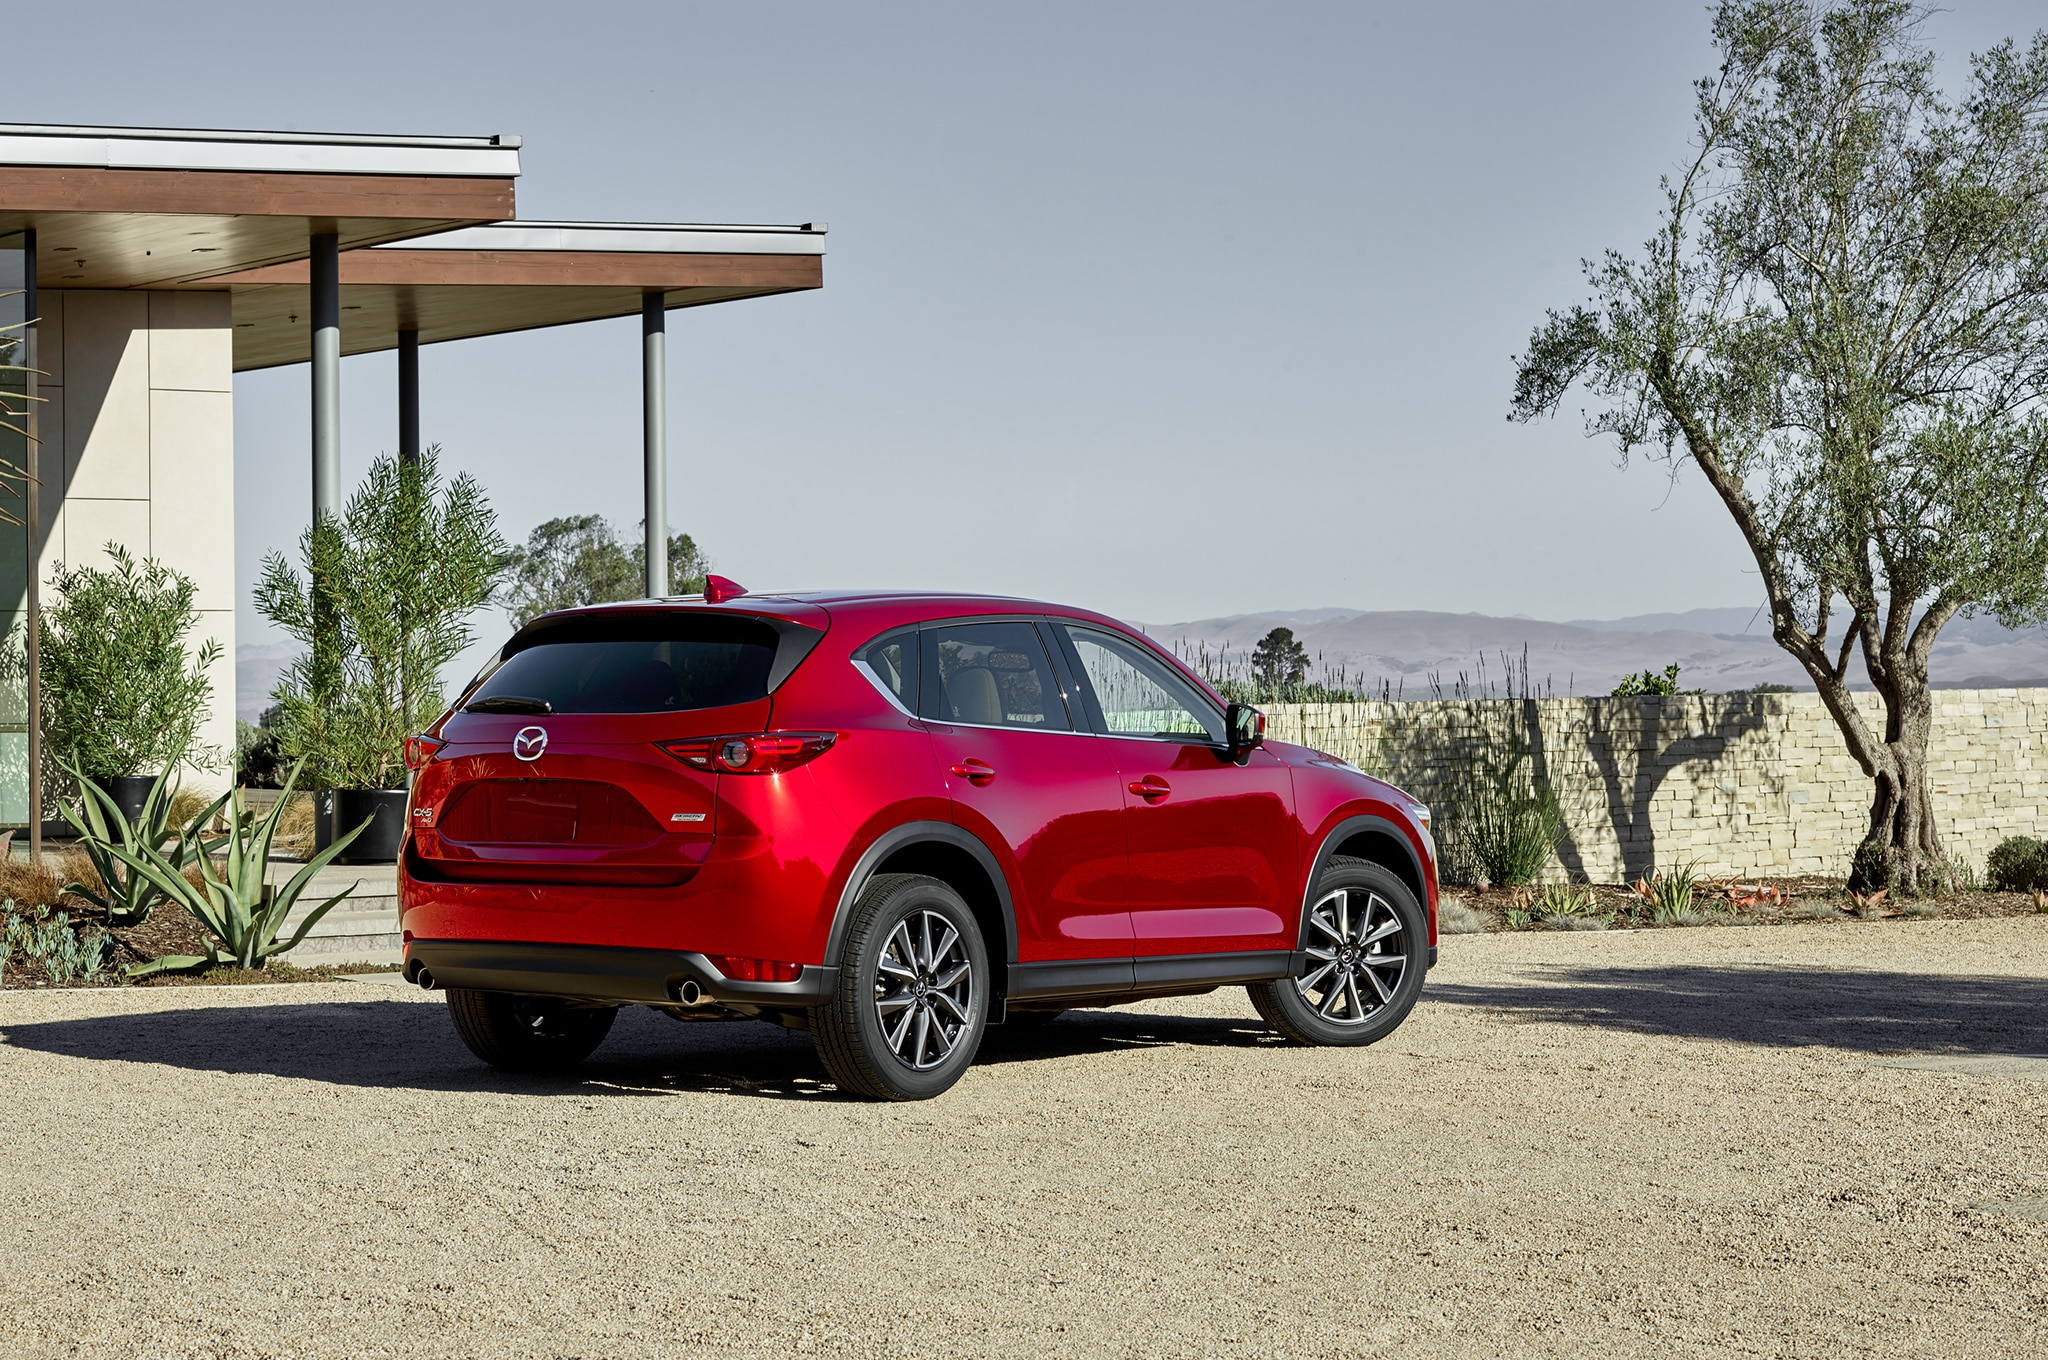 2018 Mazda Cx 5 Diesel Epa Rated Up To 28 31 Mpg Automobile Magazine